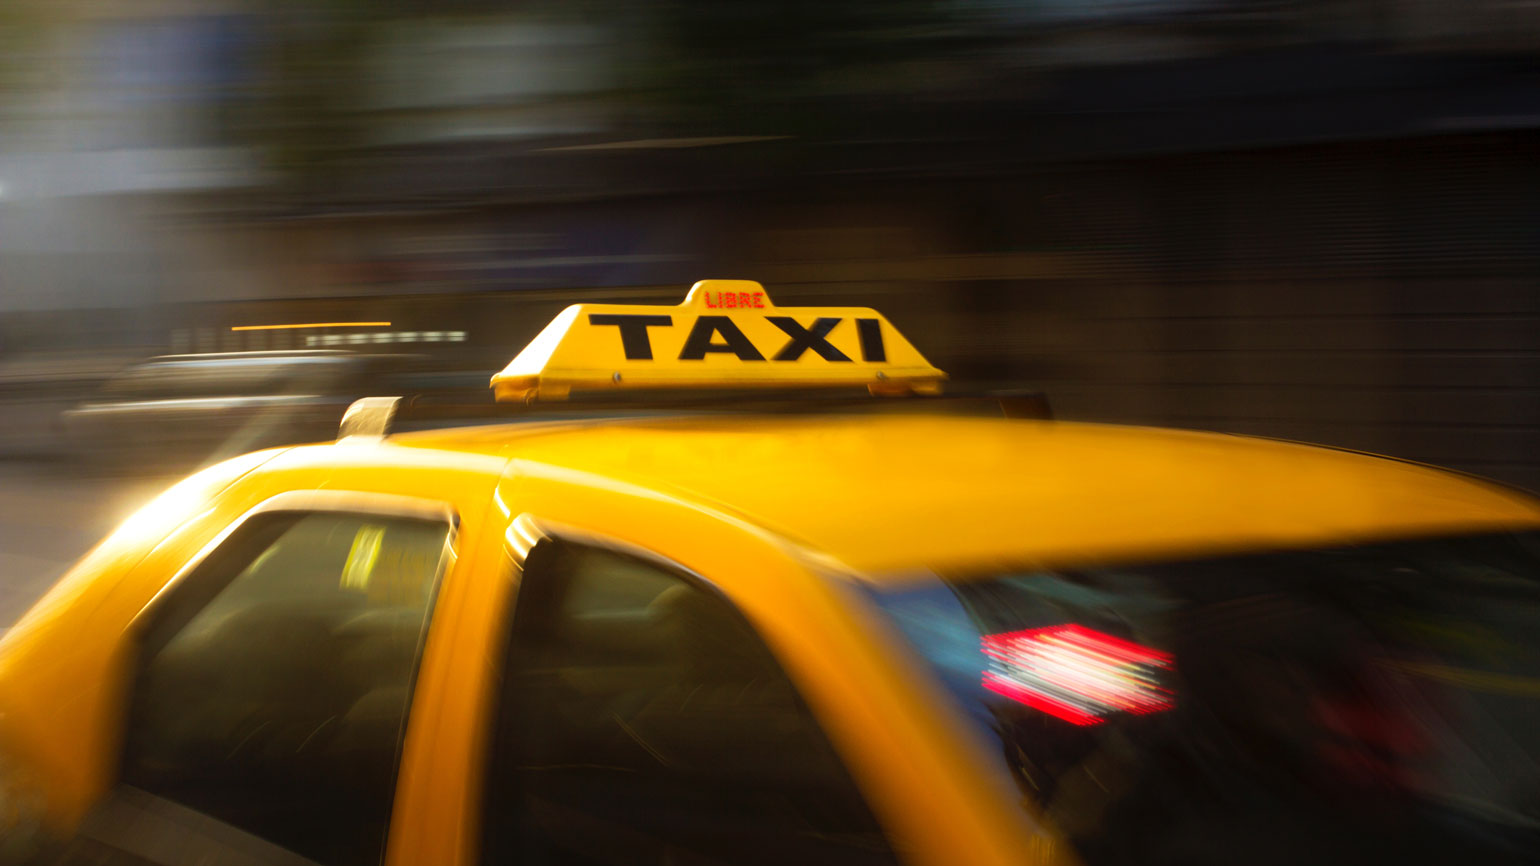 Jersey Taxis